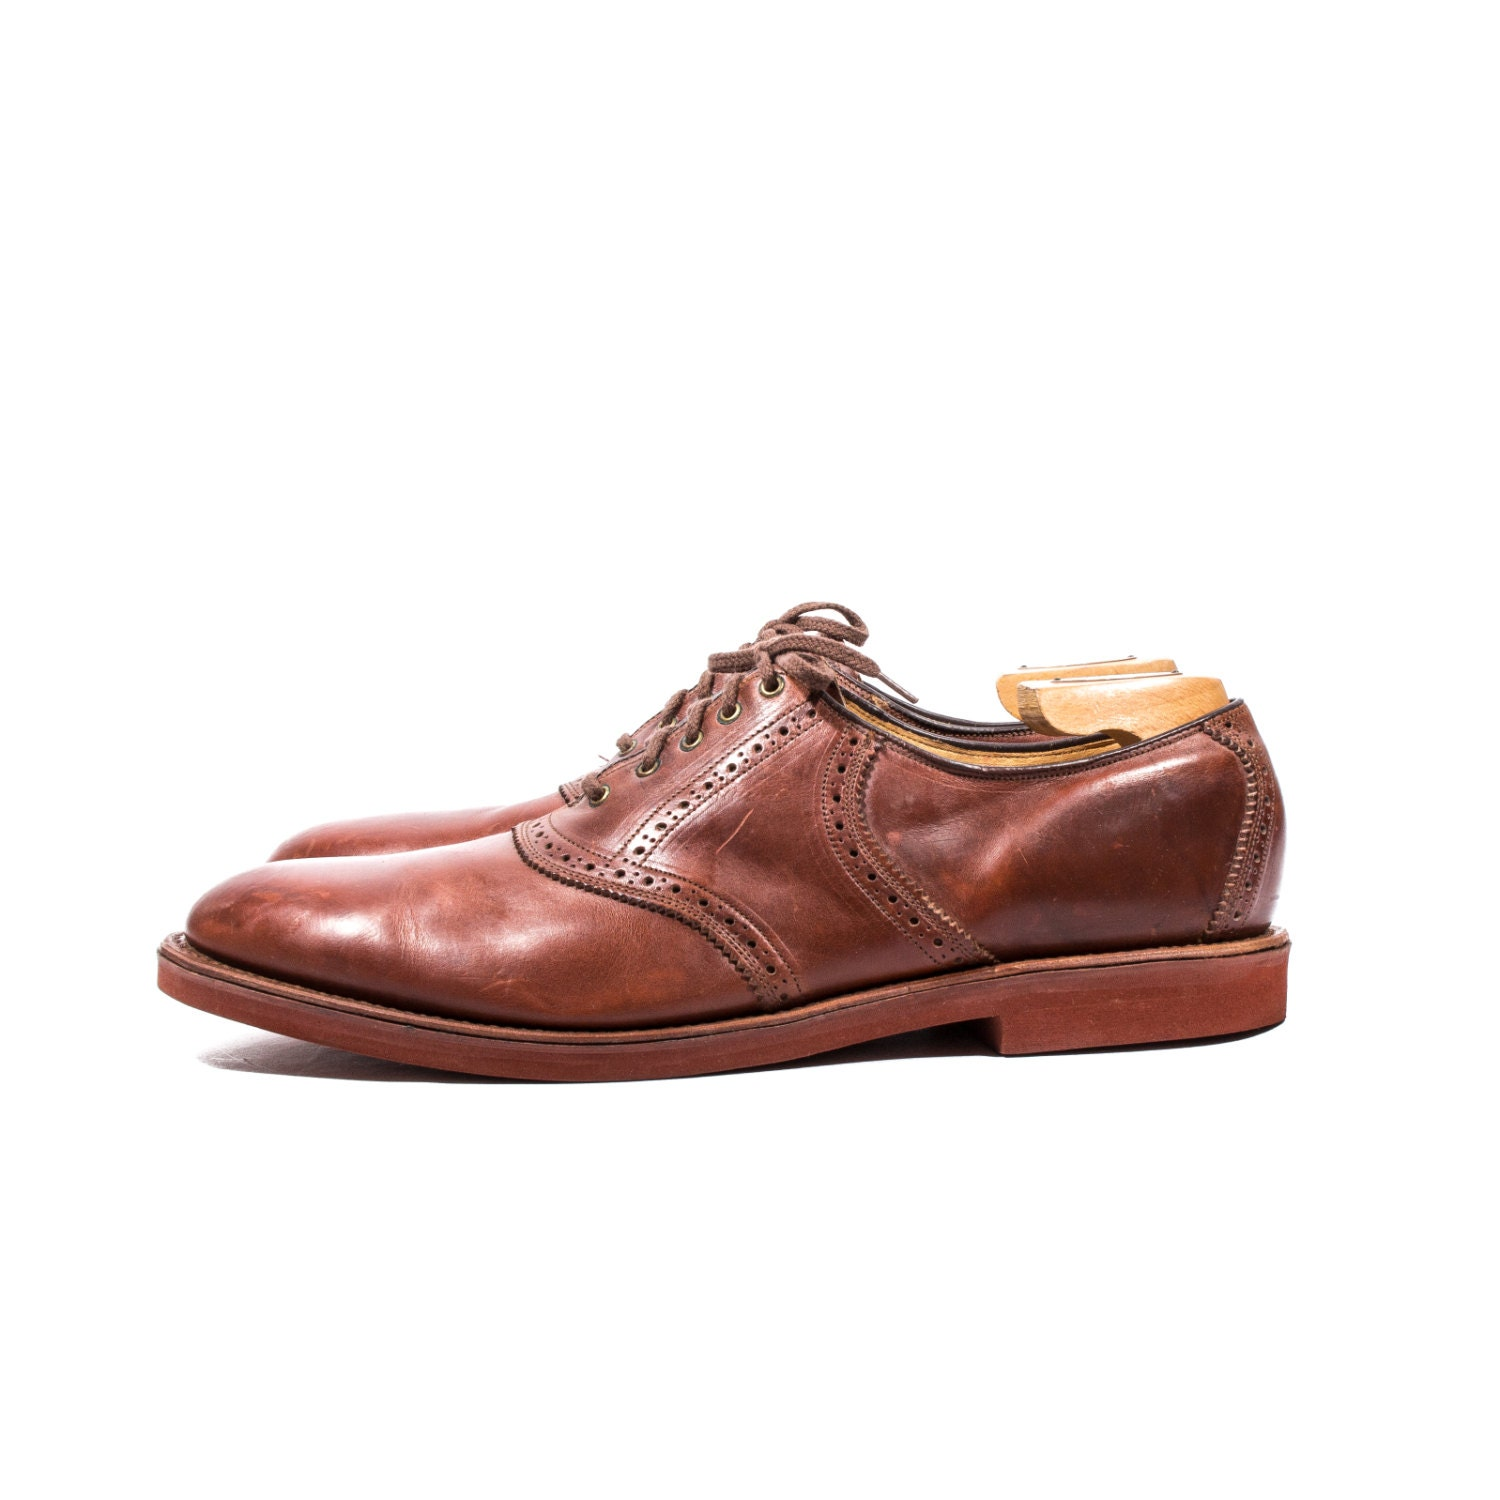 s vintage bostonian lace up saddle shoes cherry brown